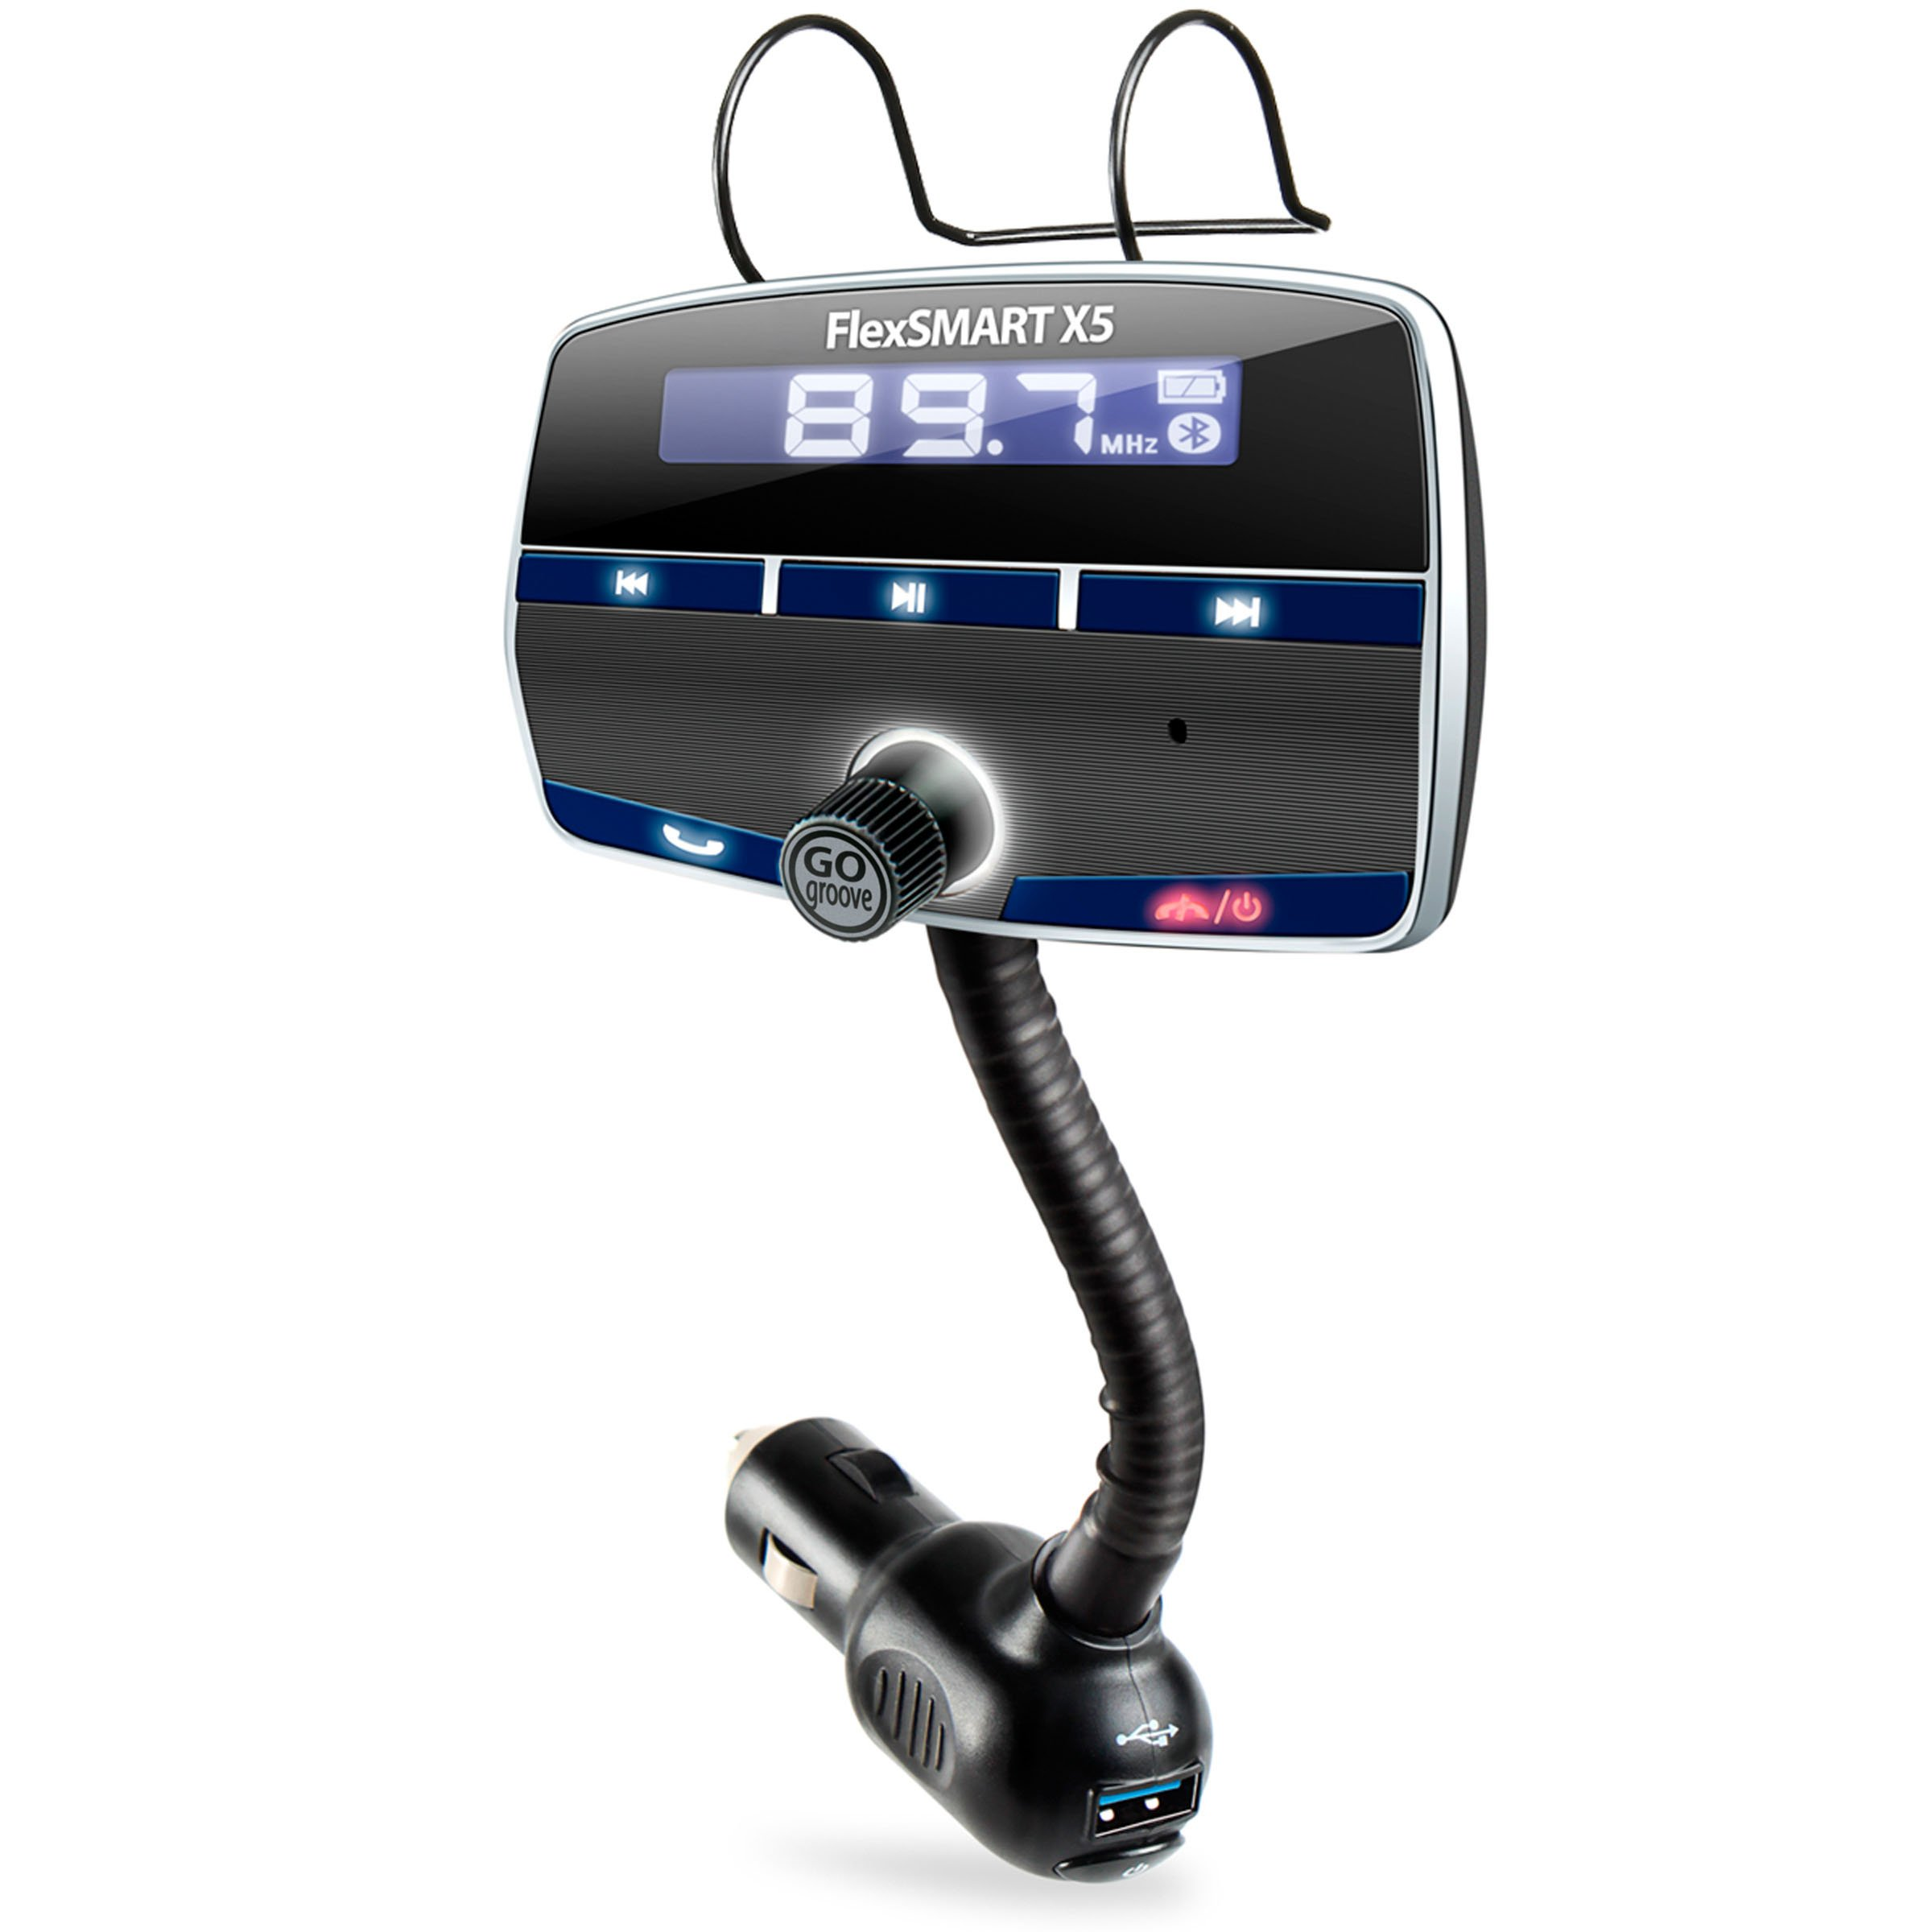 GOgroove FlexSMART X5 Bluetooth FM Transmitter Car Kit with Hands-Free Calling, Music Playback, USB Charging and Multiple Mounting Options - Works with Apple, Samsung, ASUS and More!